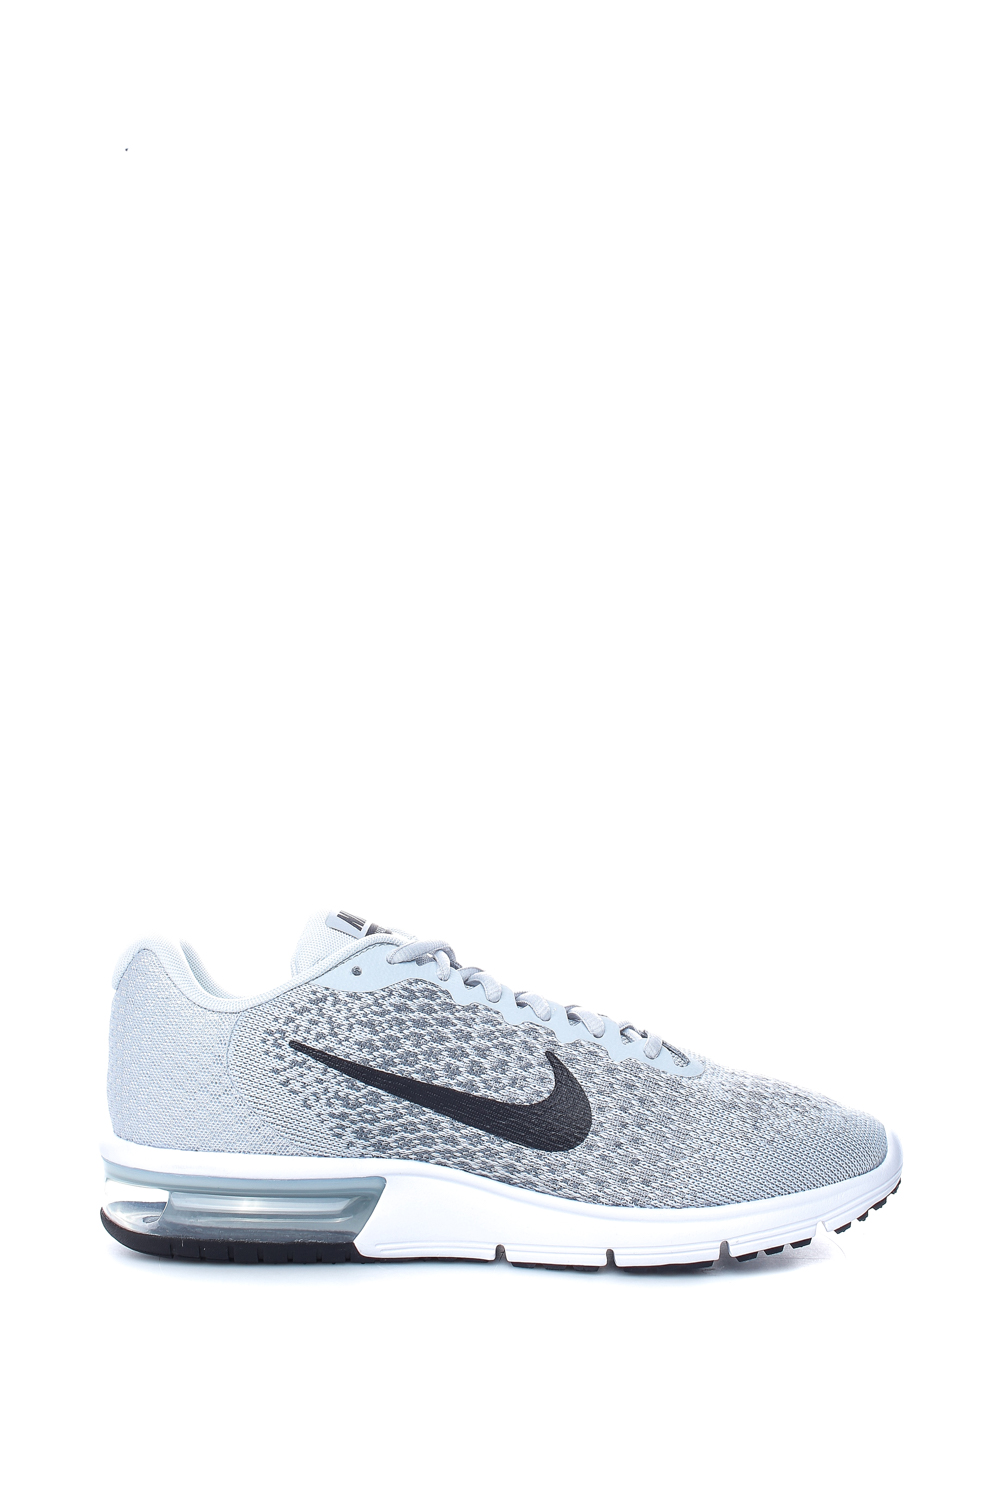 NIKE – Ανδρικά αθλητικά παπούτσια Nike AIR MAX SEQUENT 2 λευκά